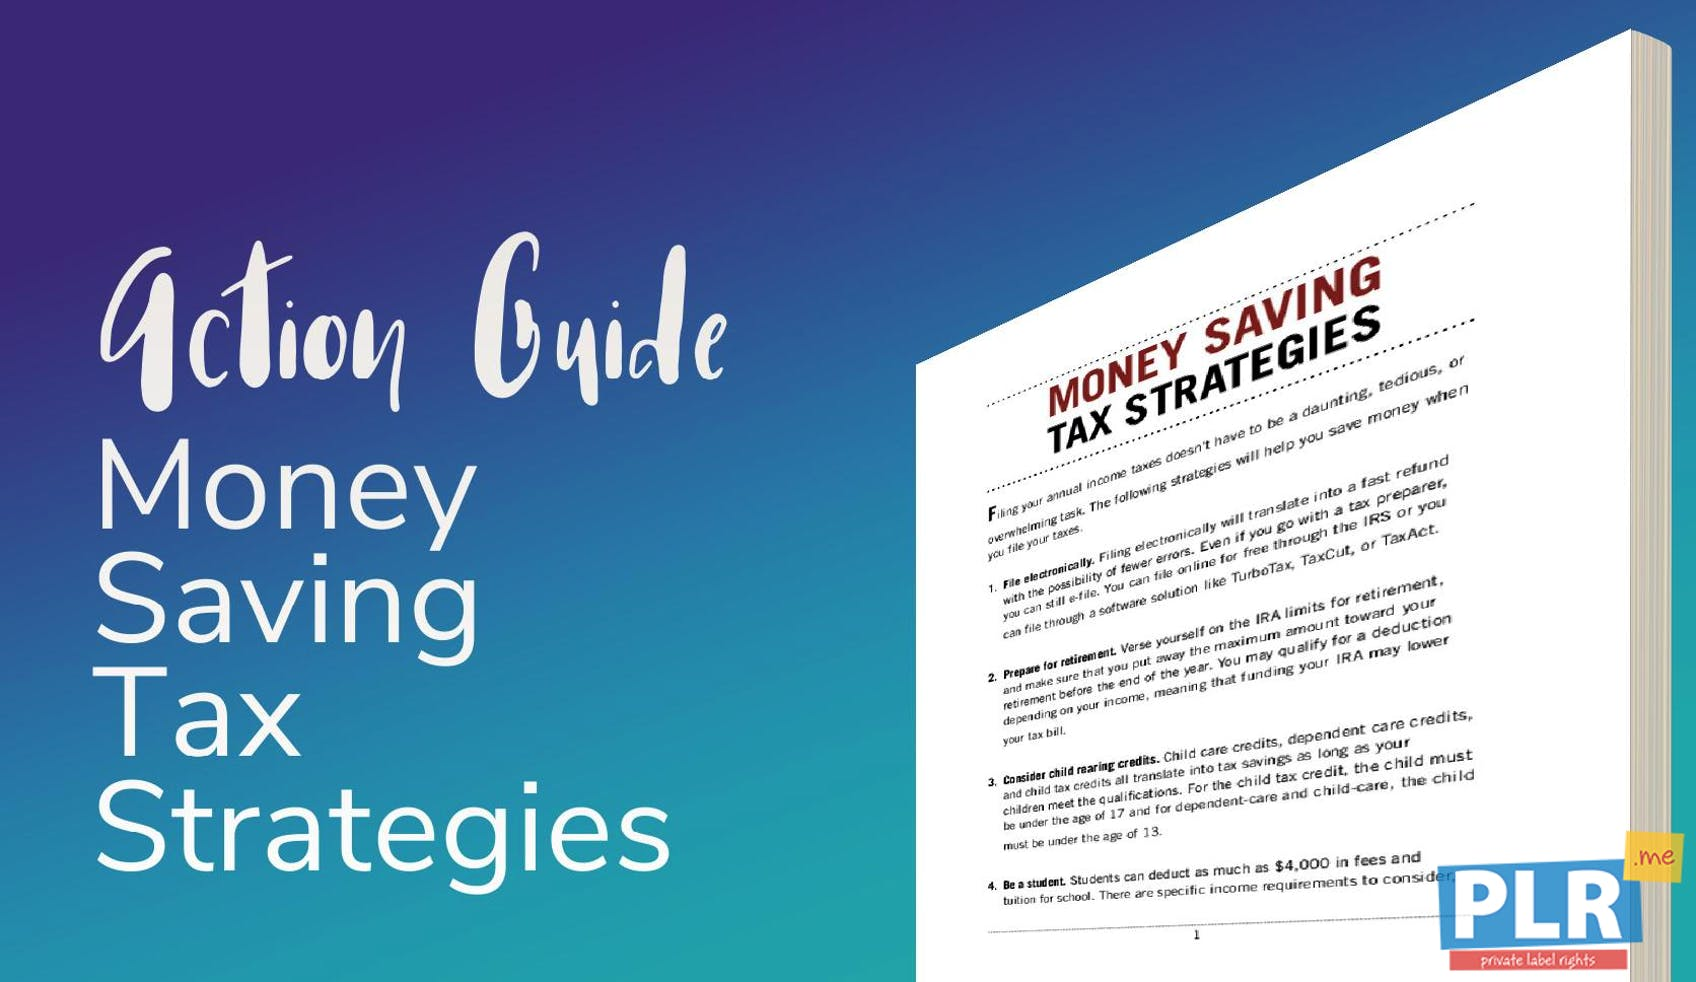 Money Saving Tax Strategies